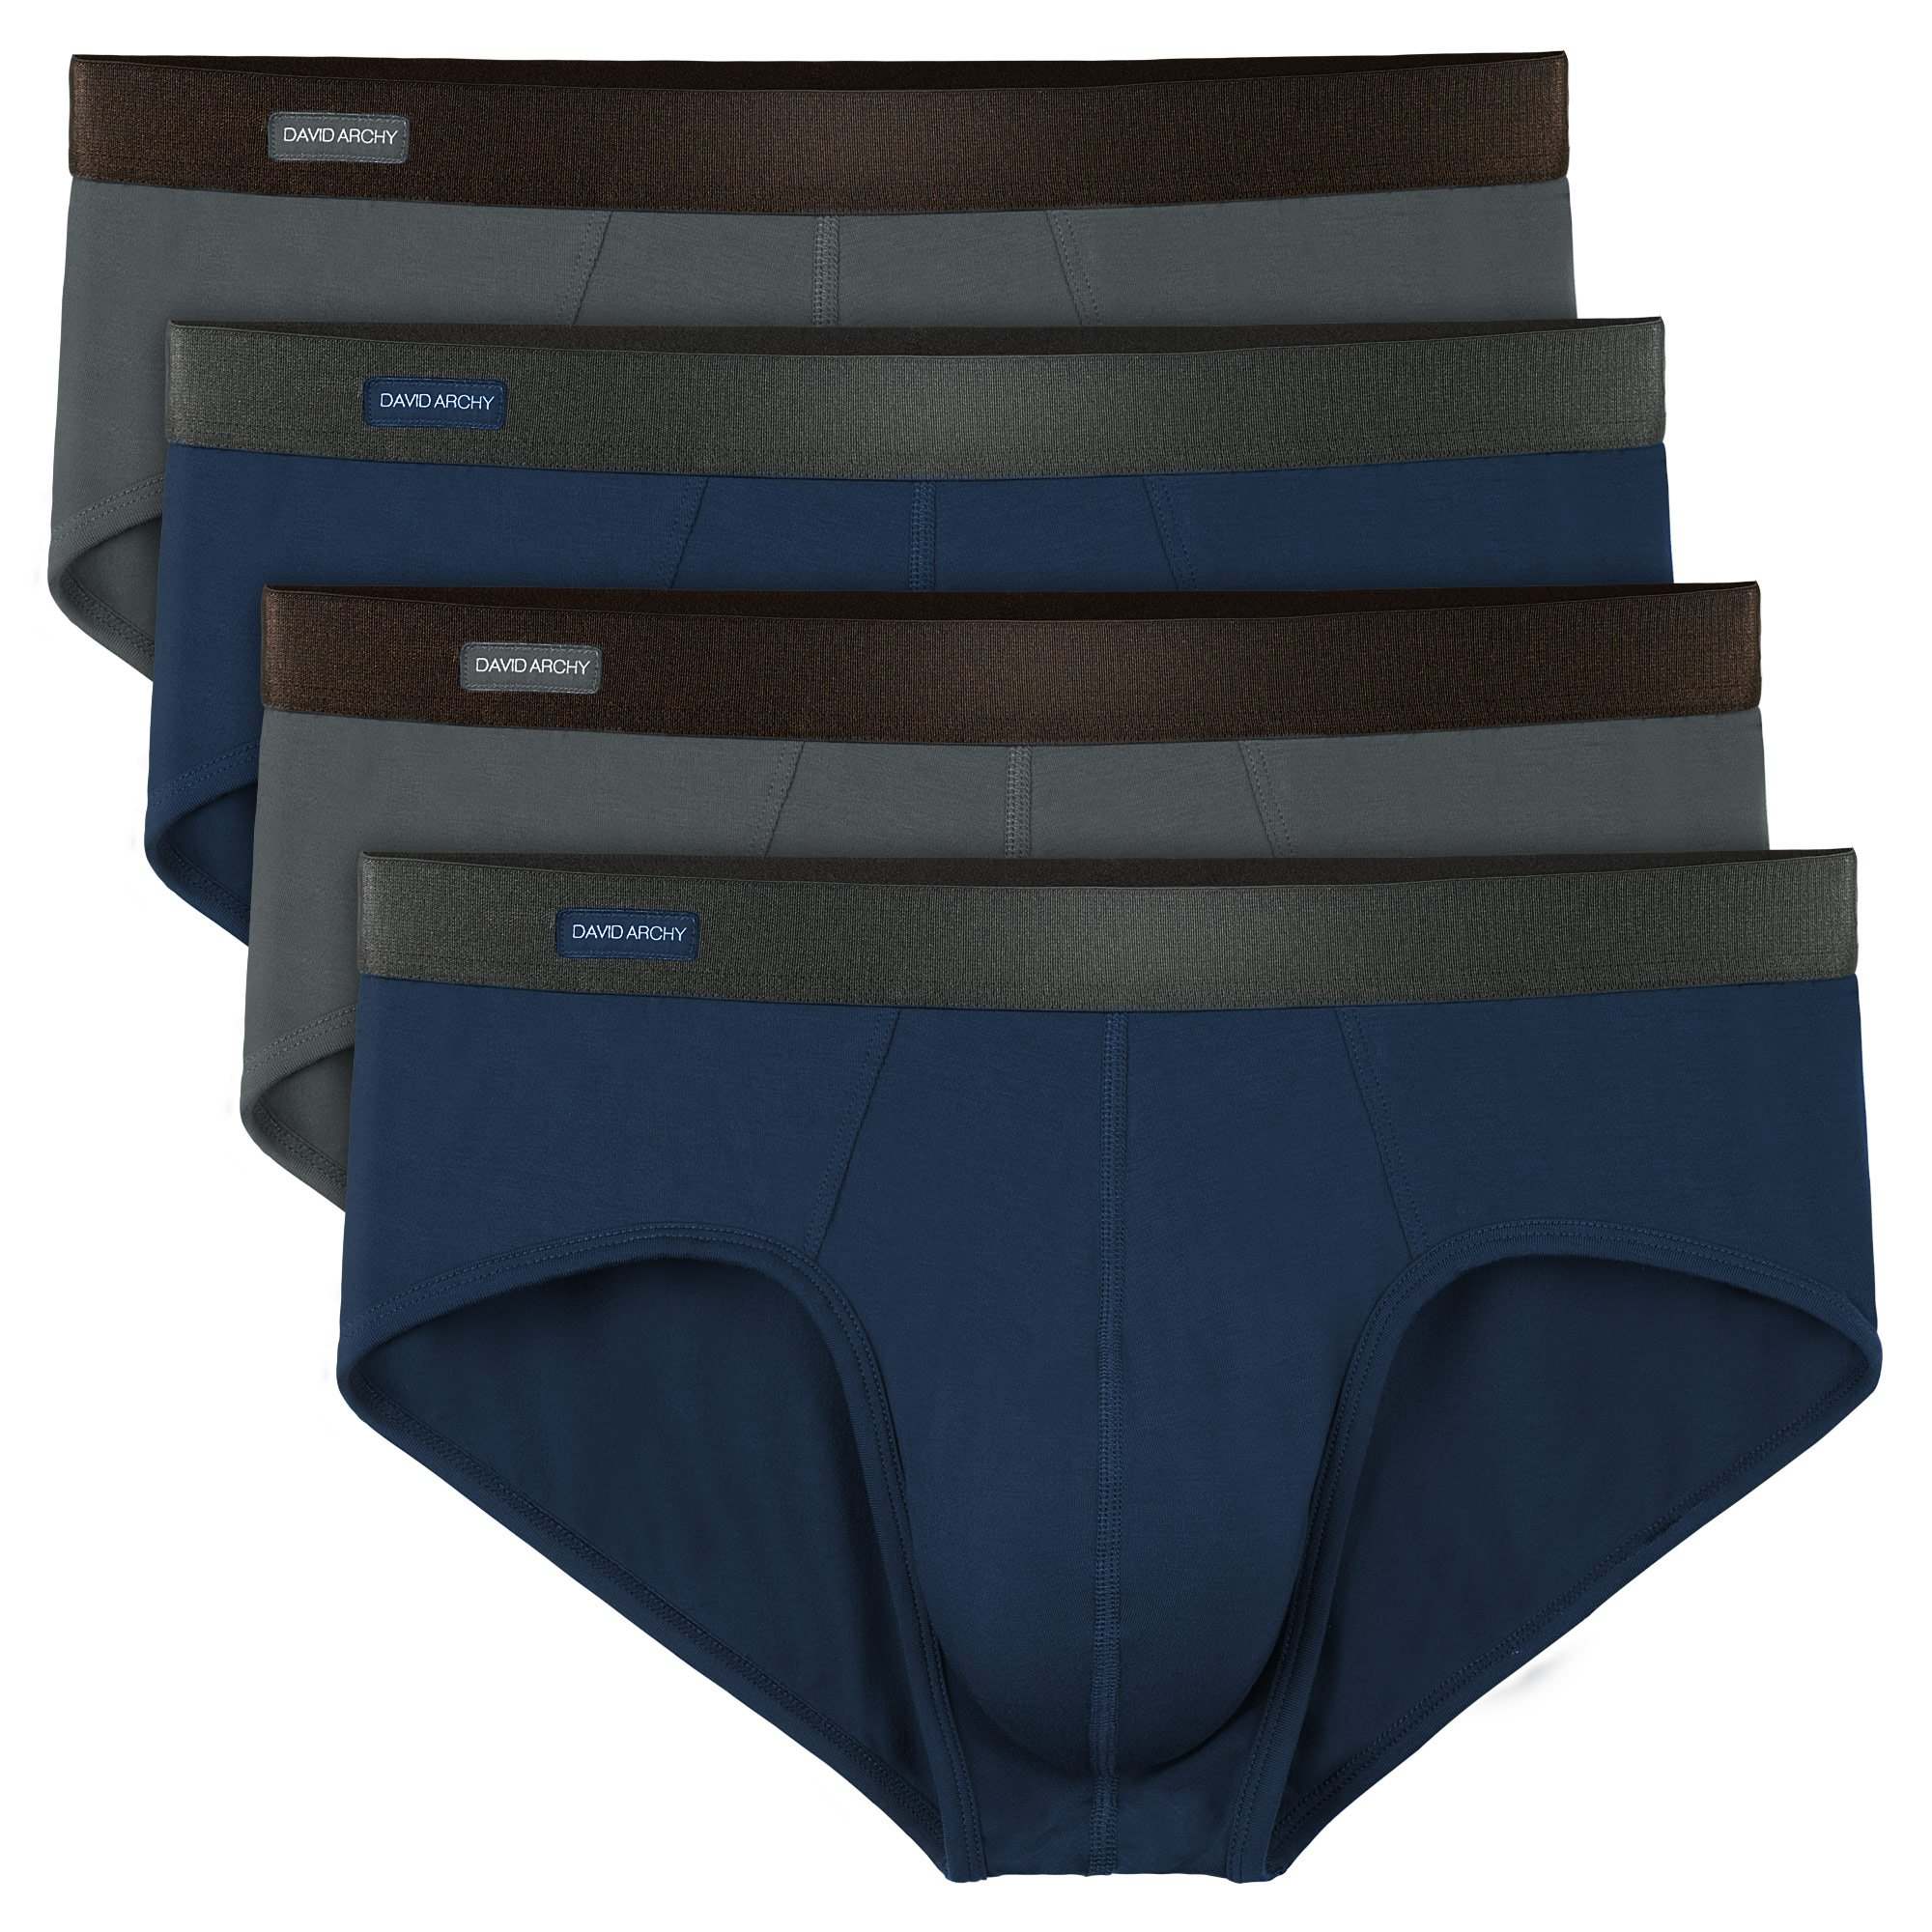 David Archy Men's 4 Pack Bamboo Rayon Ultra Soft Breathable Pouch Briefs No Fly (L, Navy Blue/Dark Gray-No Fly)